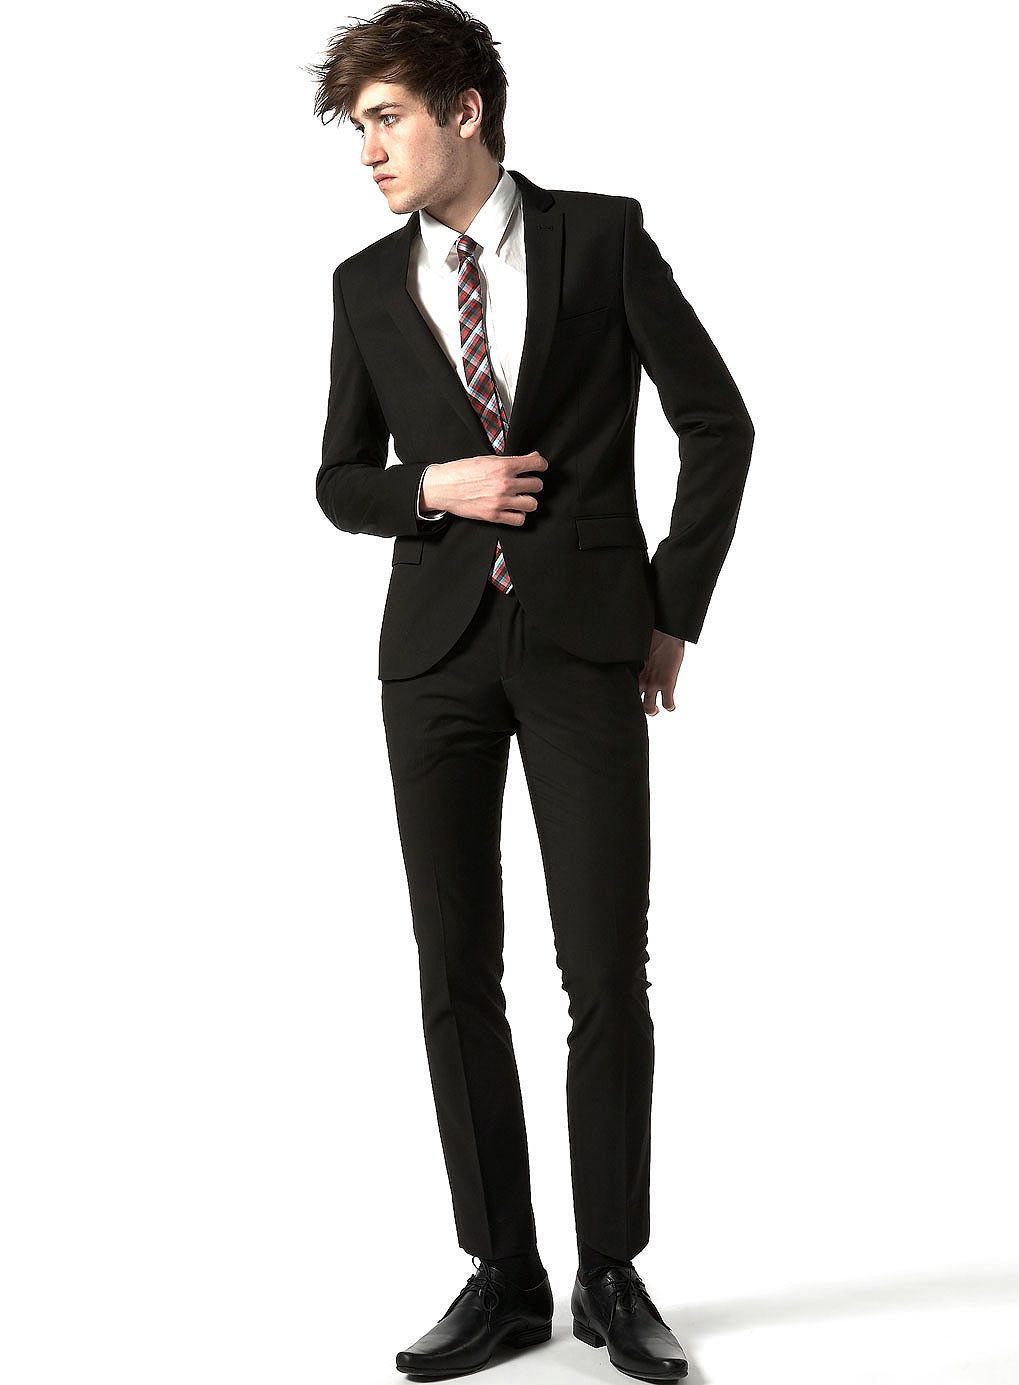 09e73618a768 TOPMAN BLACK TEXTURED SKINNY SUIT | Fashion Crazed | Skinny suits ...